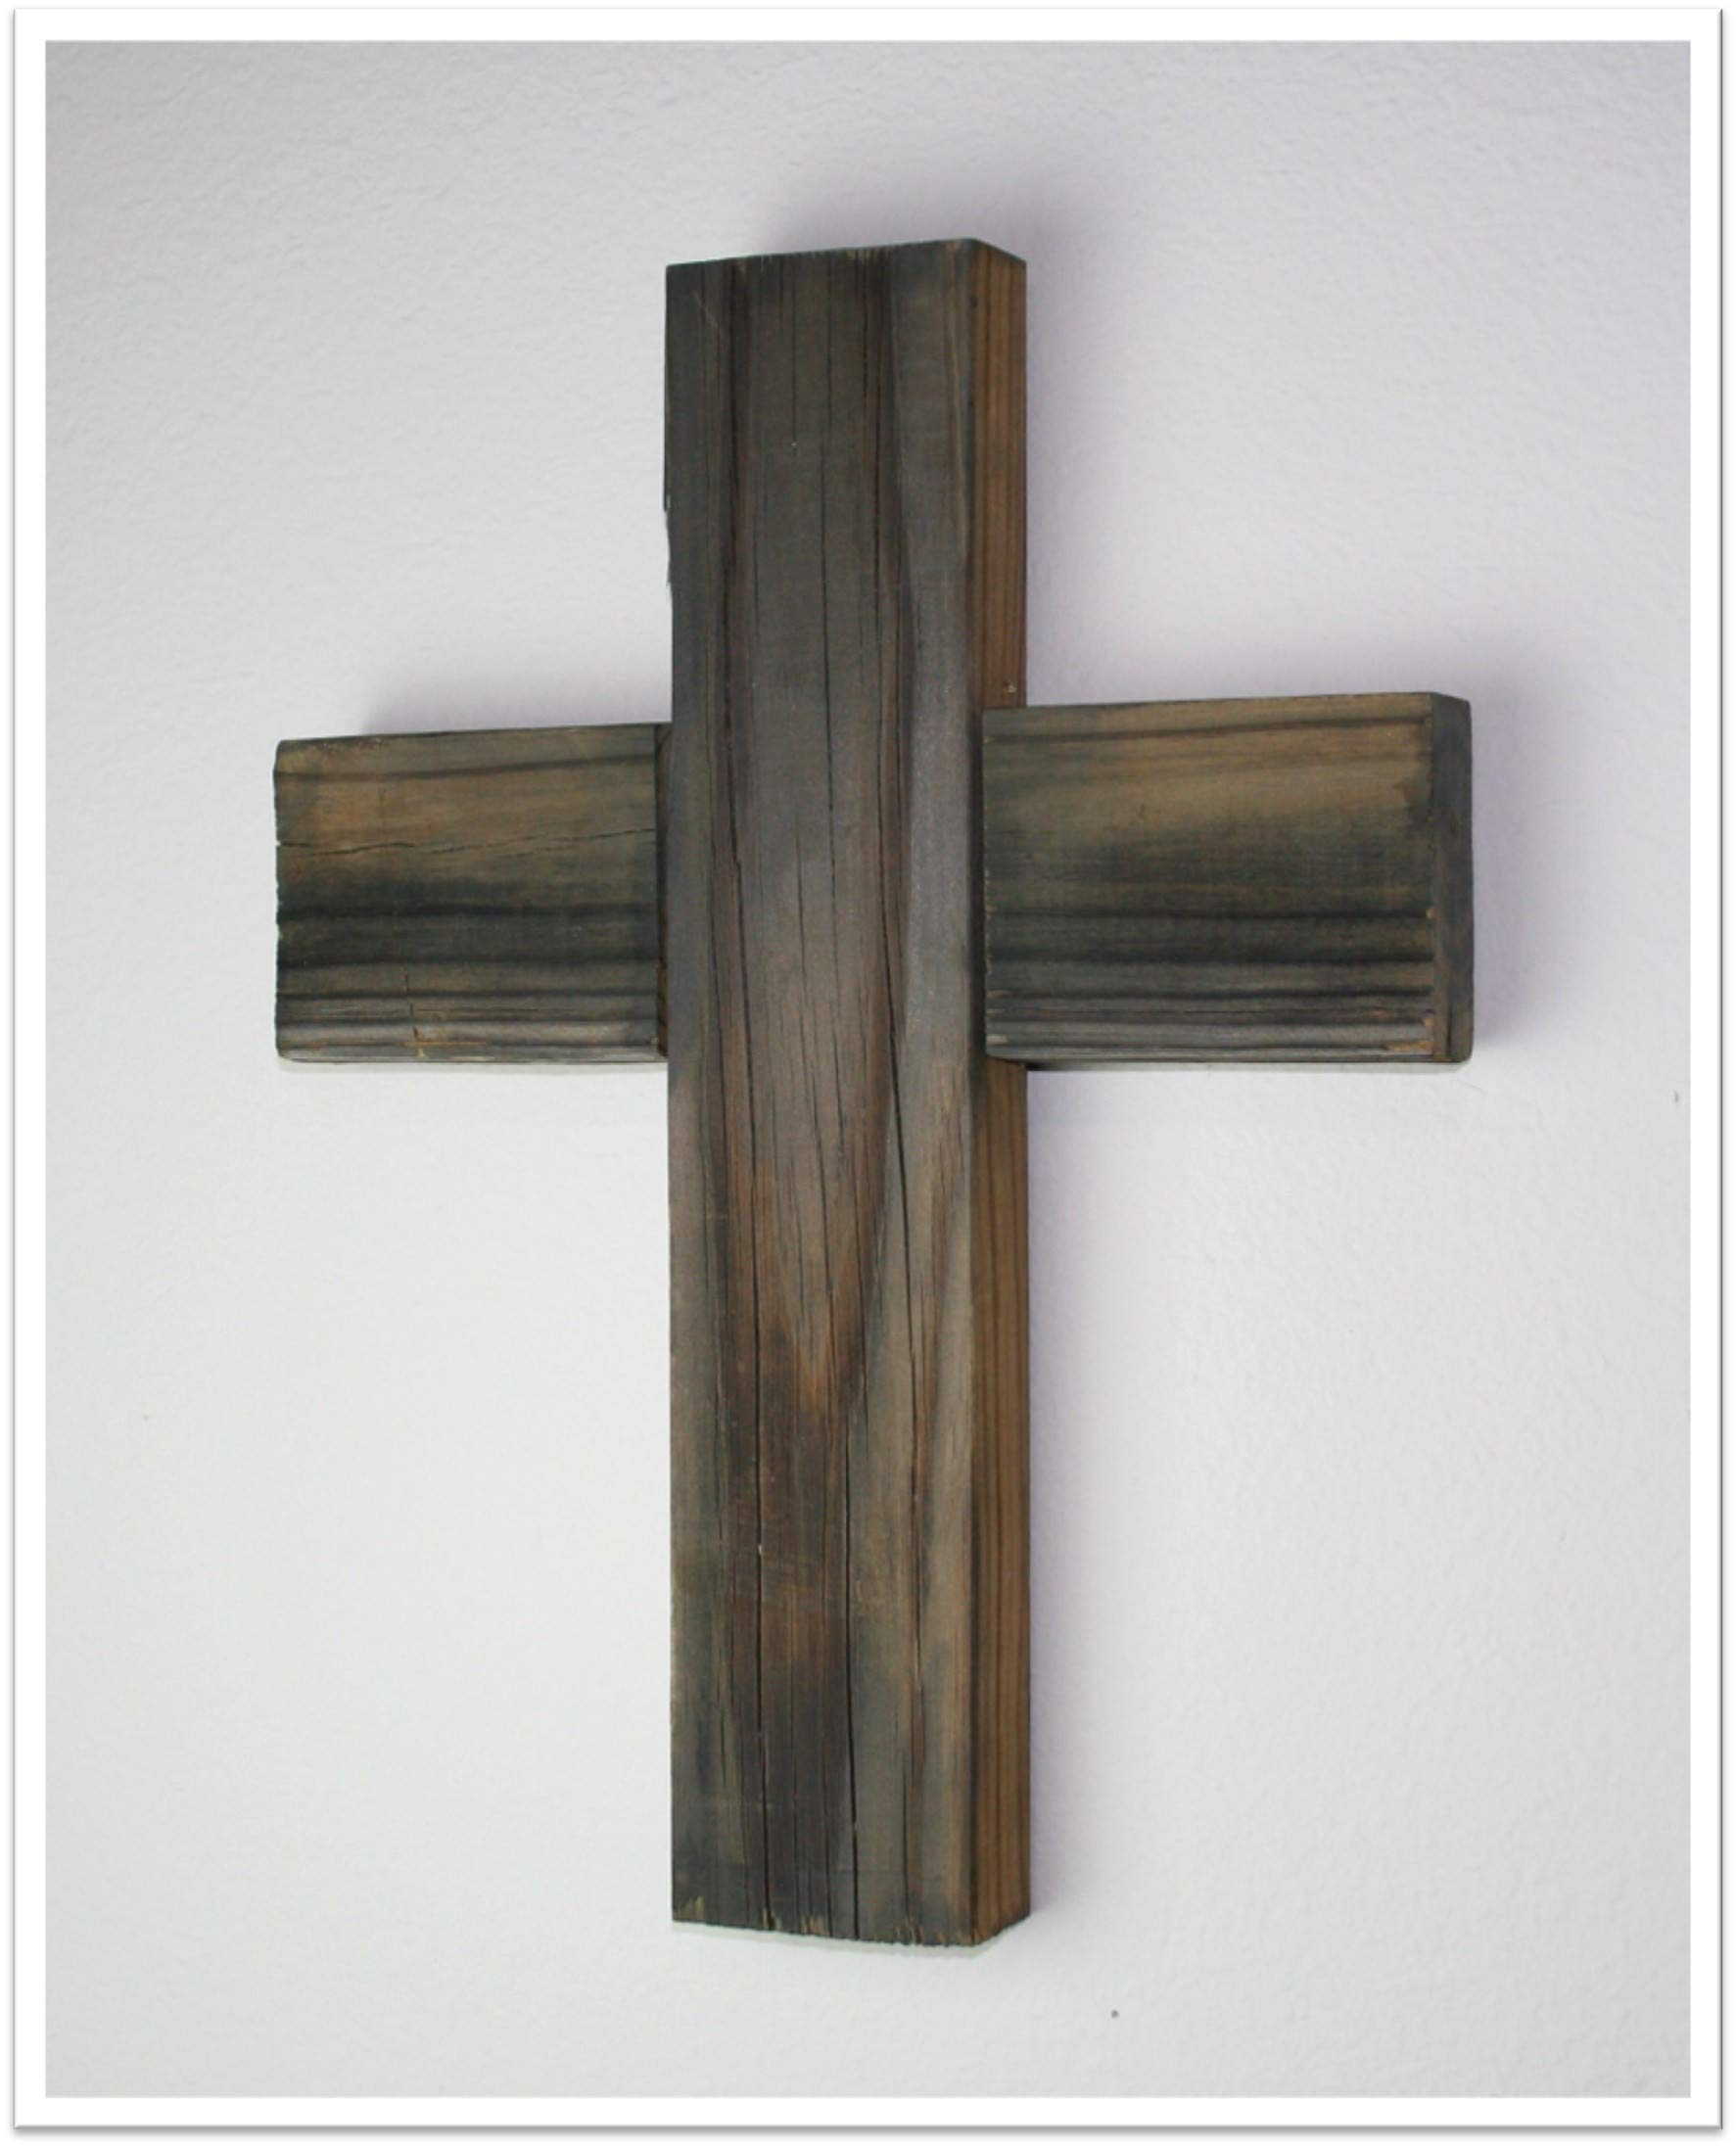 Rustic Wood Cross 12 x 16 100% Reclaimed Weathered Wood (Thick Cross)